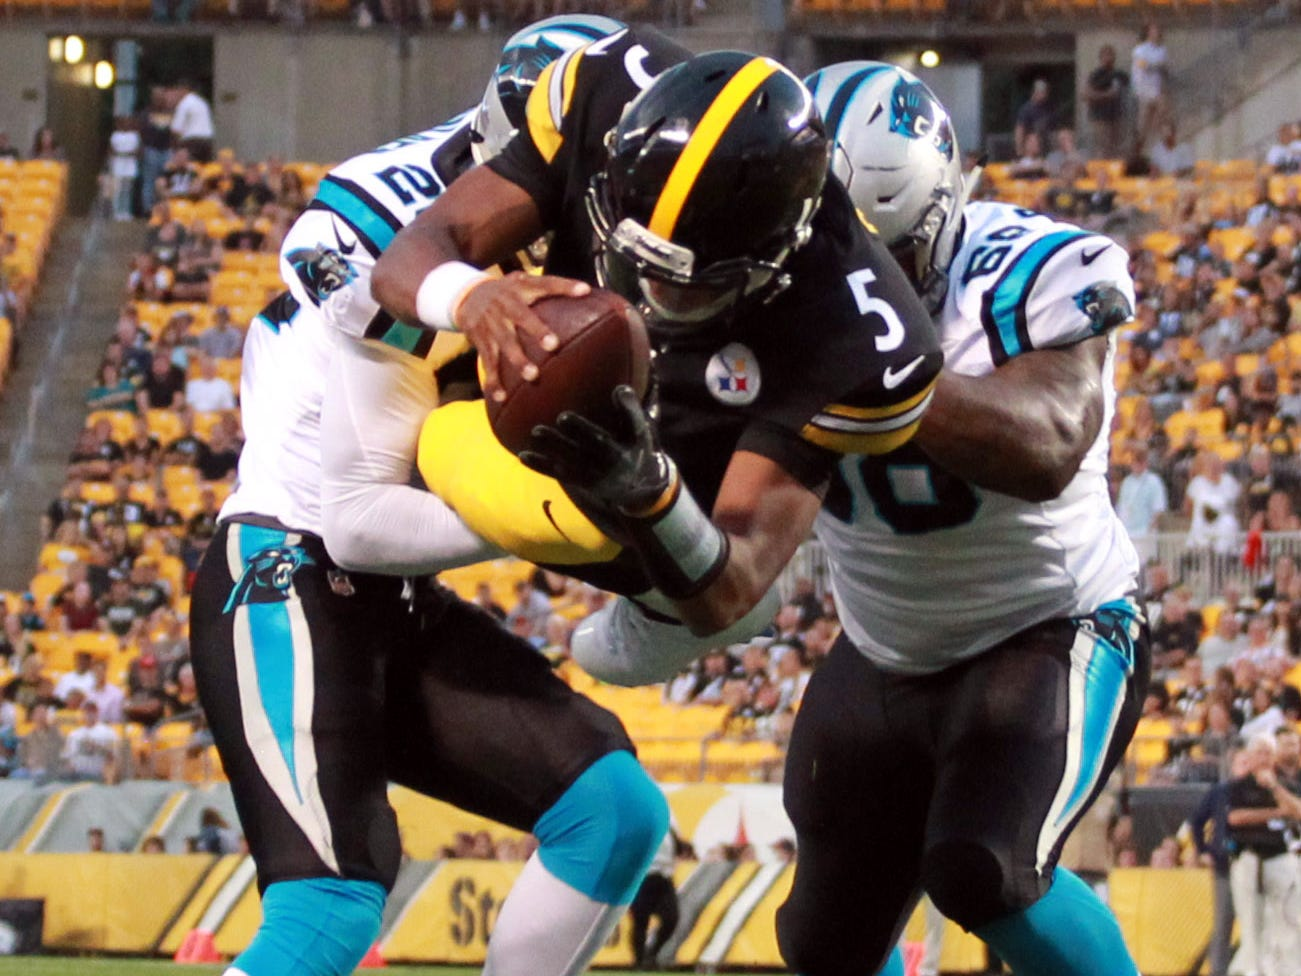 Pittsburgh Steelers quarterback Joshua Dobbs dives between Carolina Panthers defensive back Rashaan Gaulden (28) and defensive tackle Tracy Sprinkle (68) for a touchdown during the first quarter at Heinz Field.